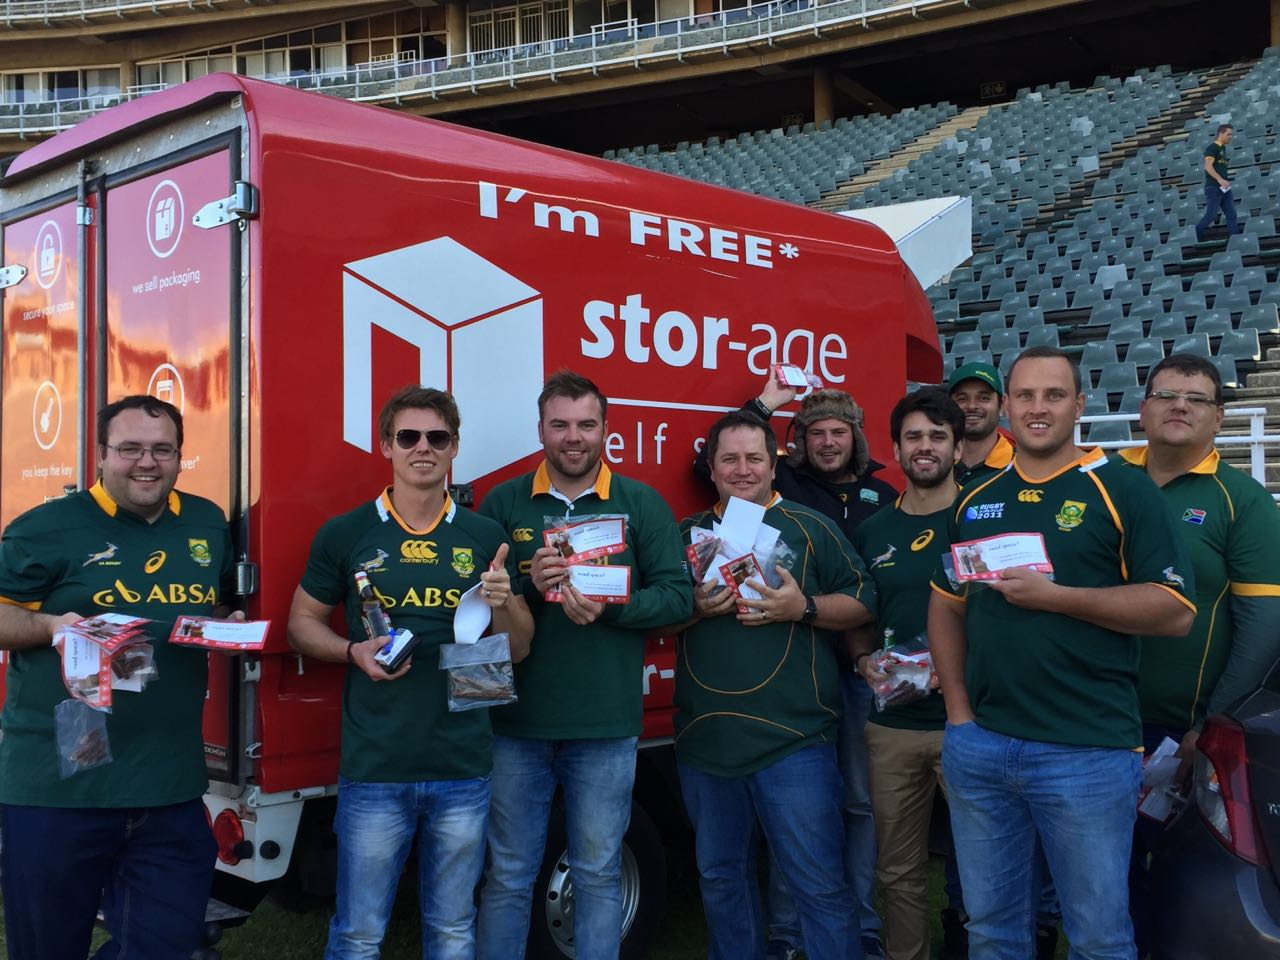 Sprinbok supporters score free biltong at rugby courtesy of Stor-Age self Storage